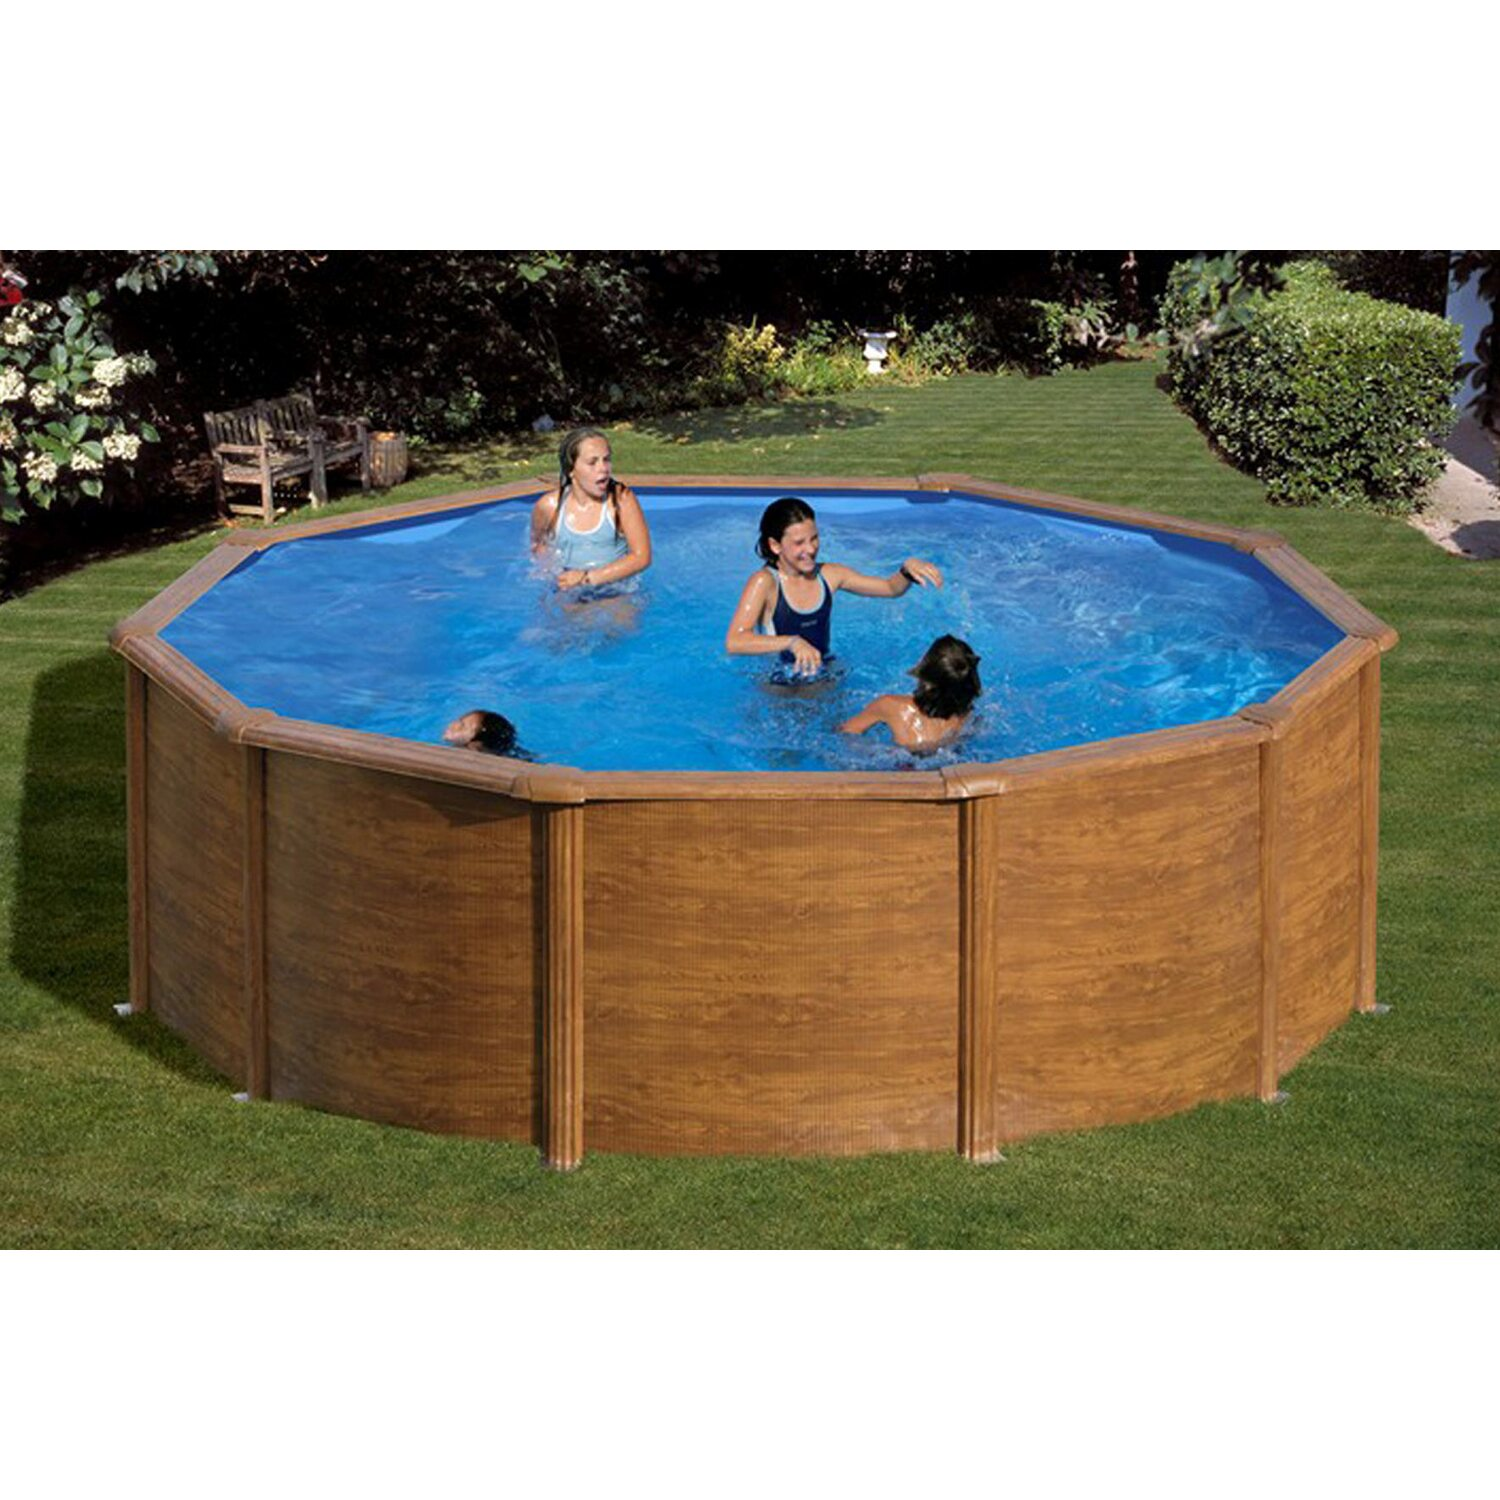 Summer fun stahlwand pool set holz dekor rhodos for Obi sandfilteranlage pool